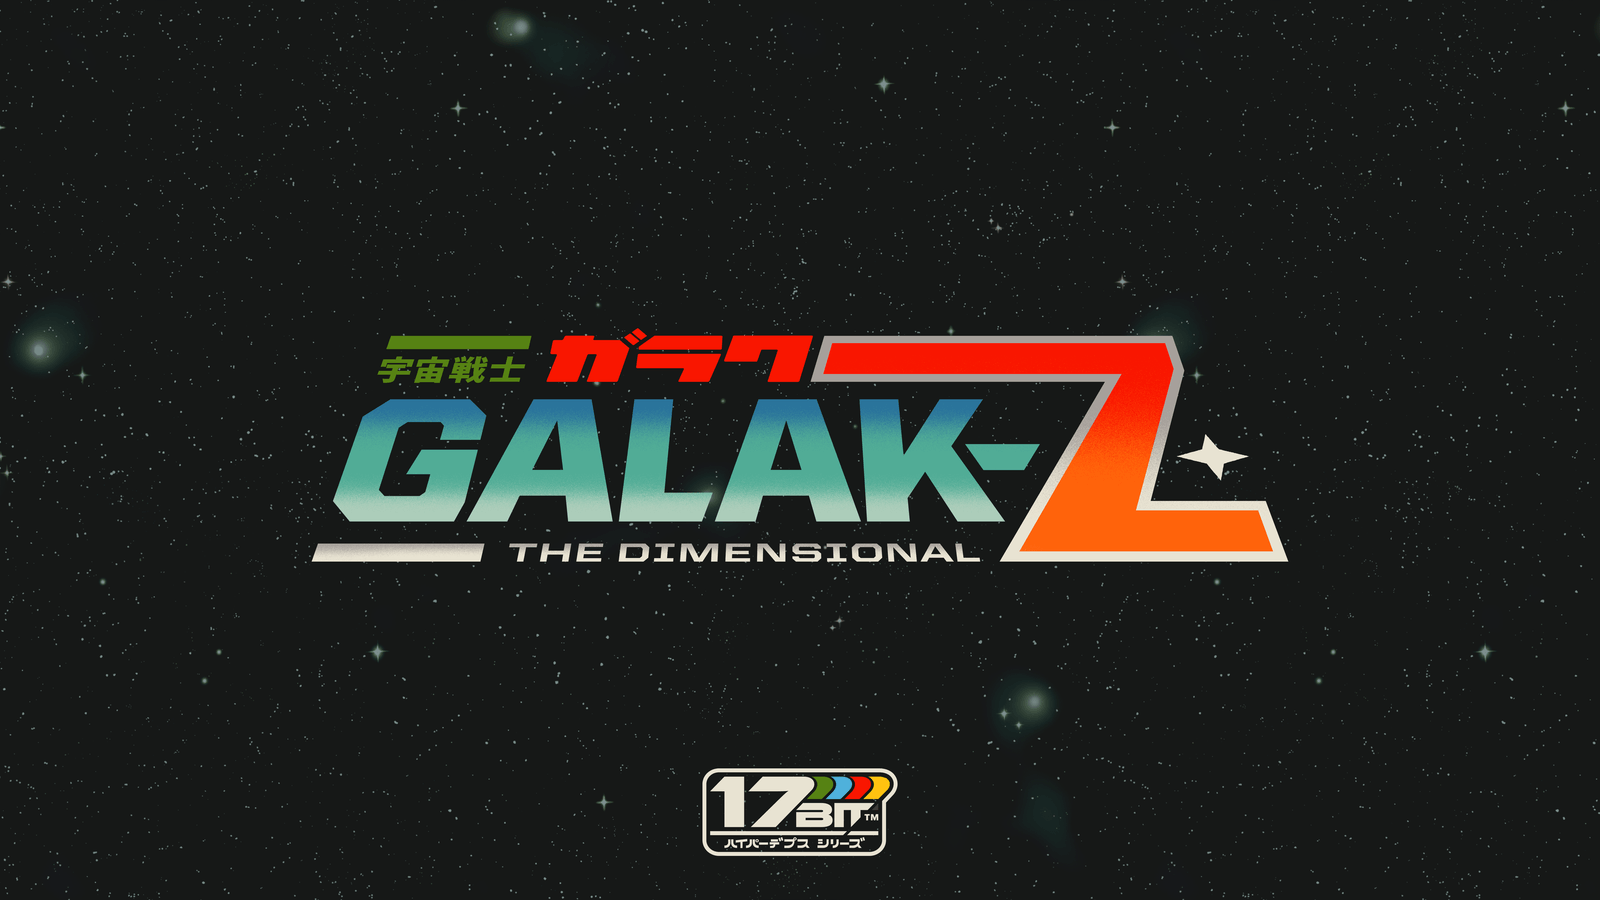 Galak-Z: The Dimensional Review